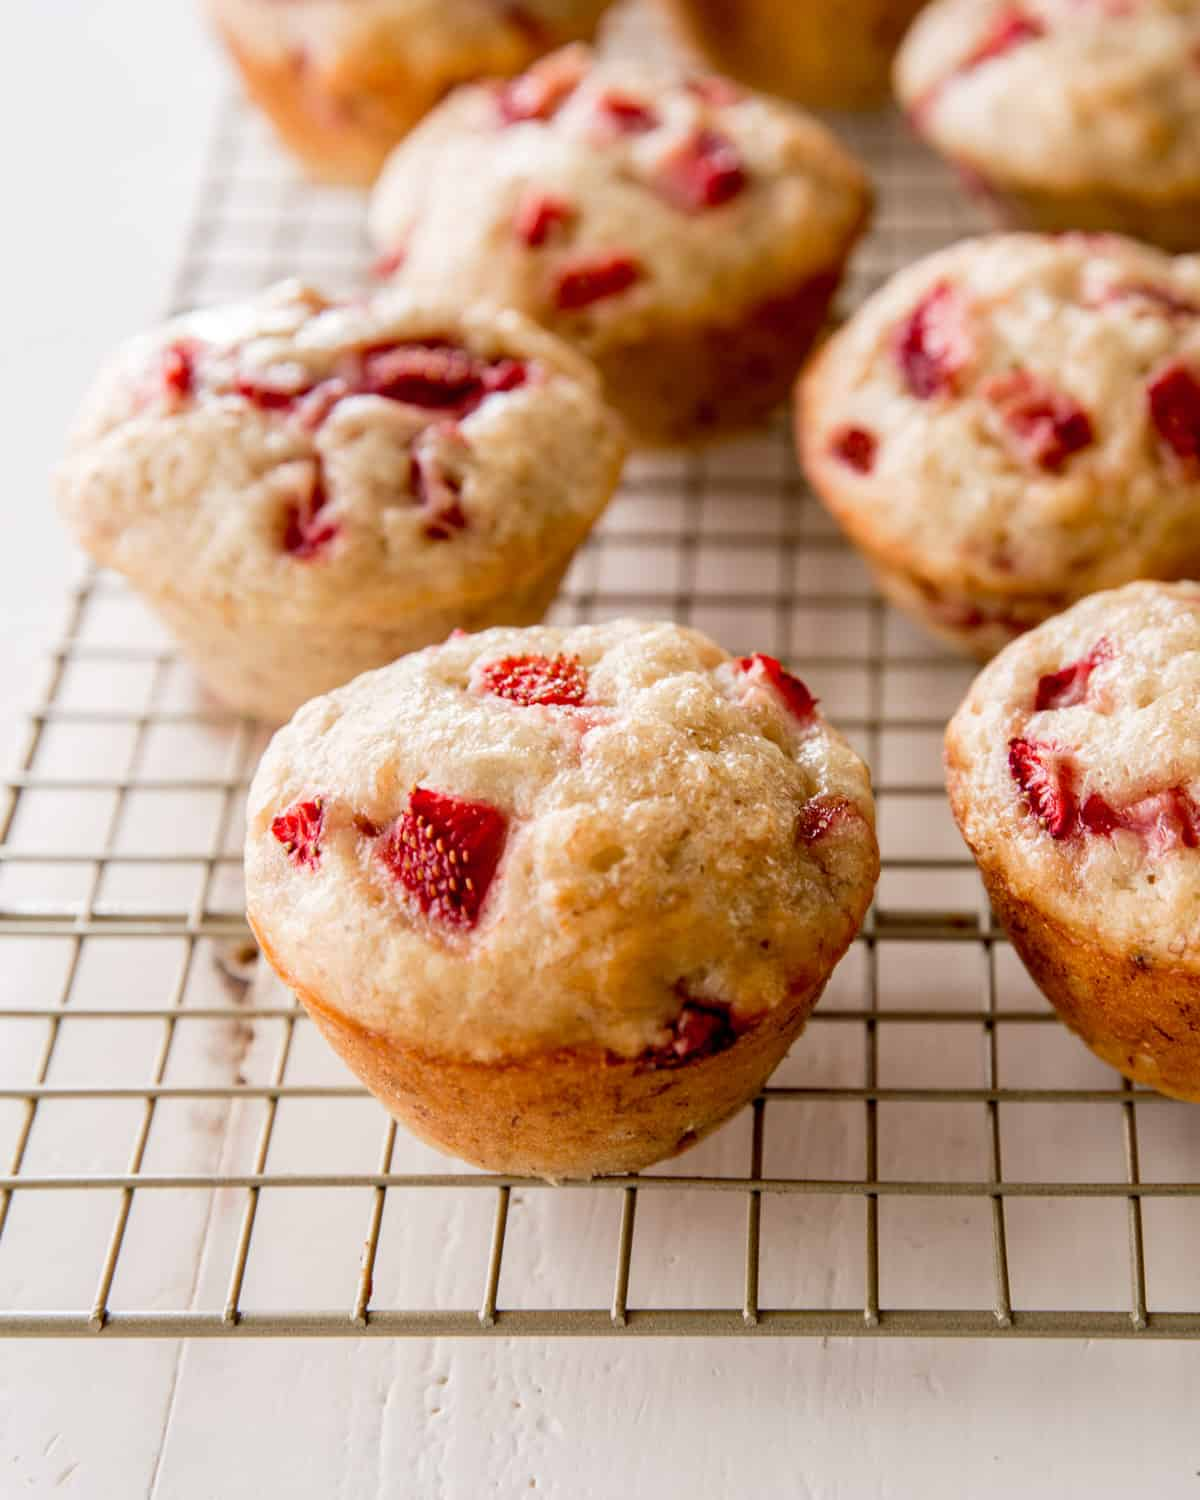 muffins on a wire cooling rack